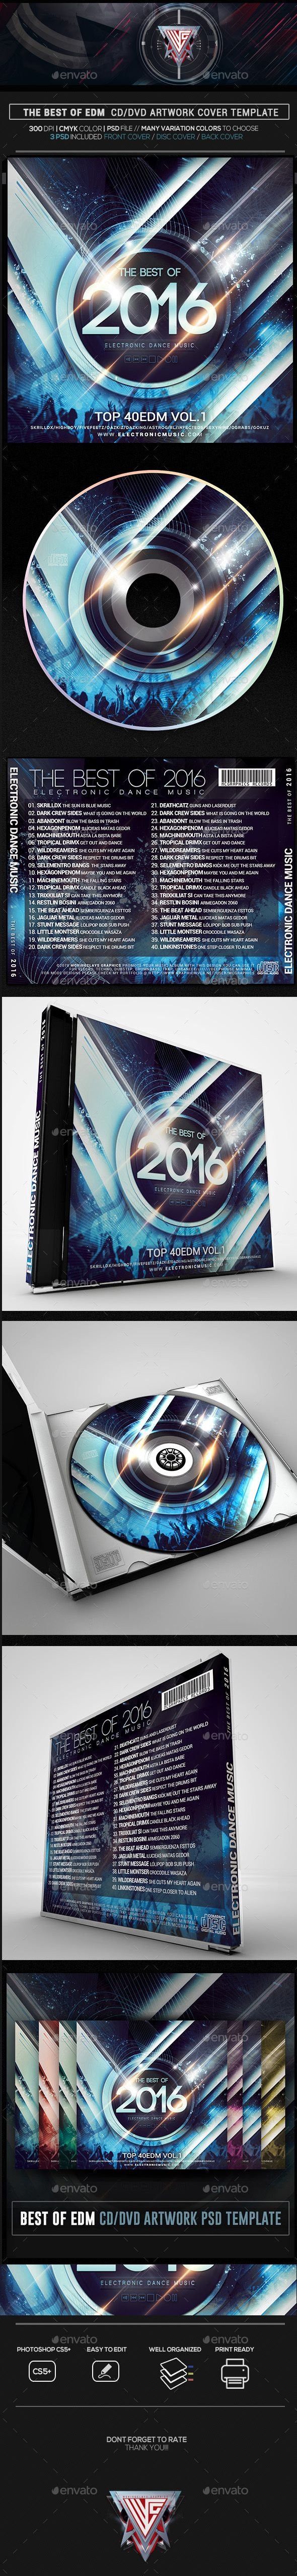 the best of edm 2016 cd dvd template psd cd dvd cover